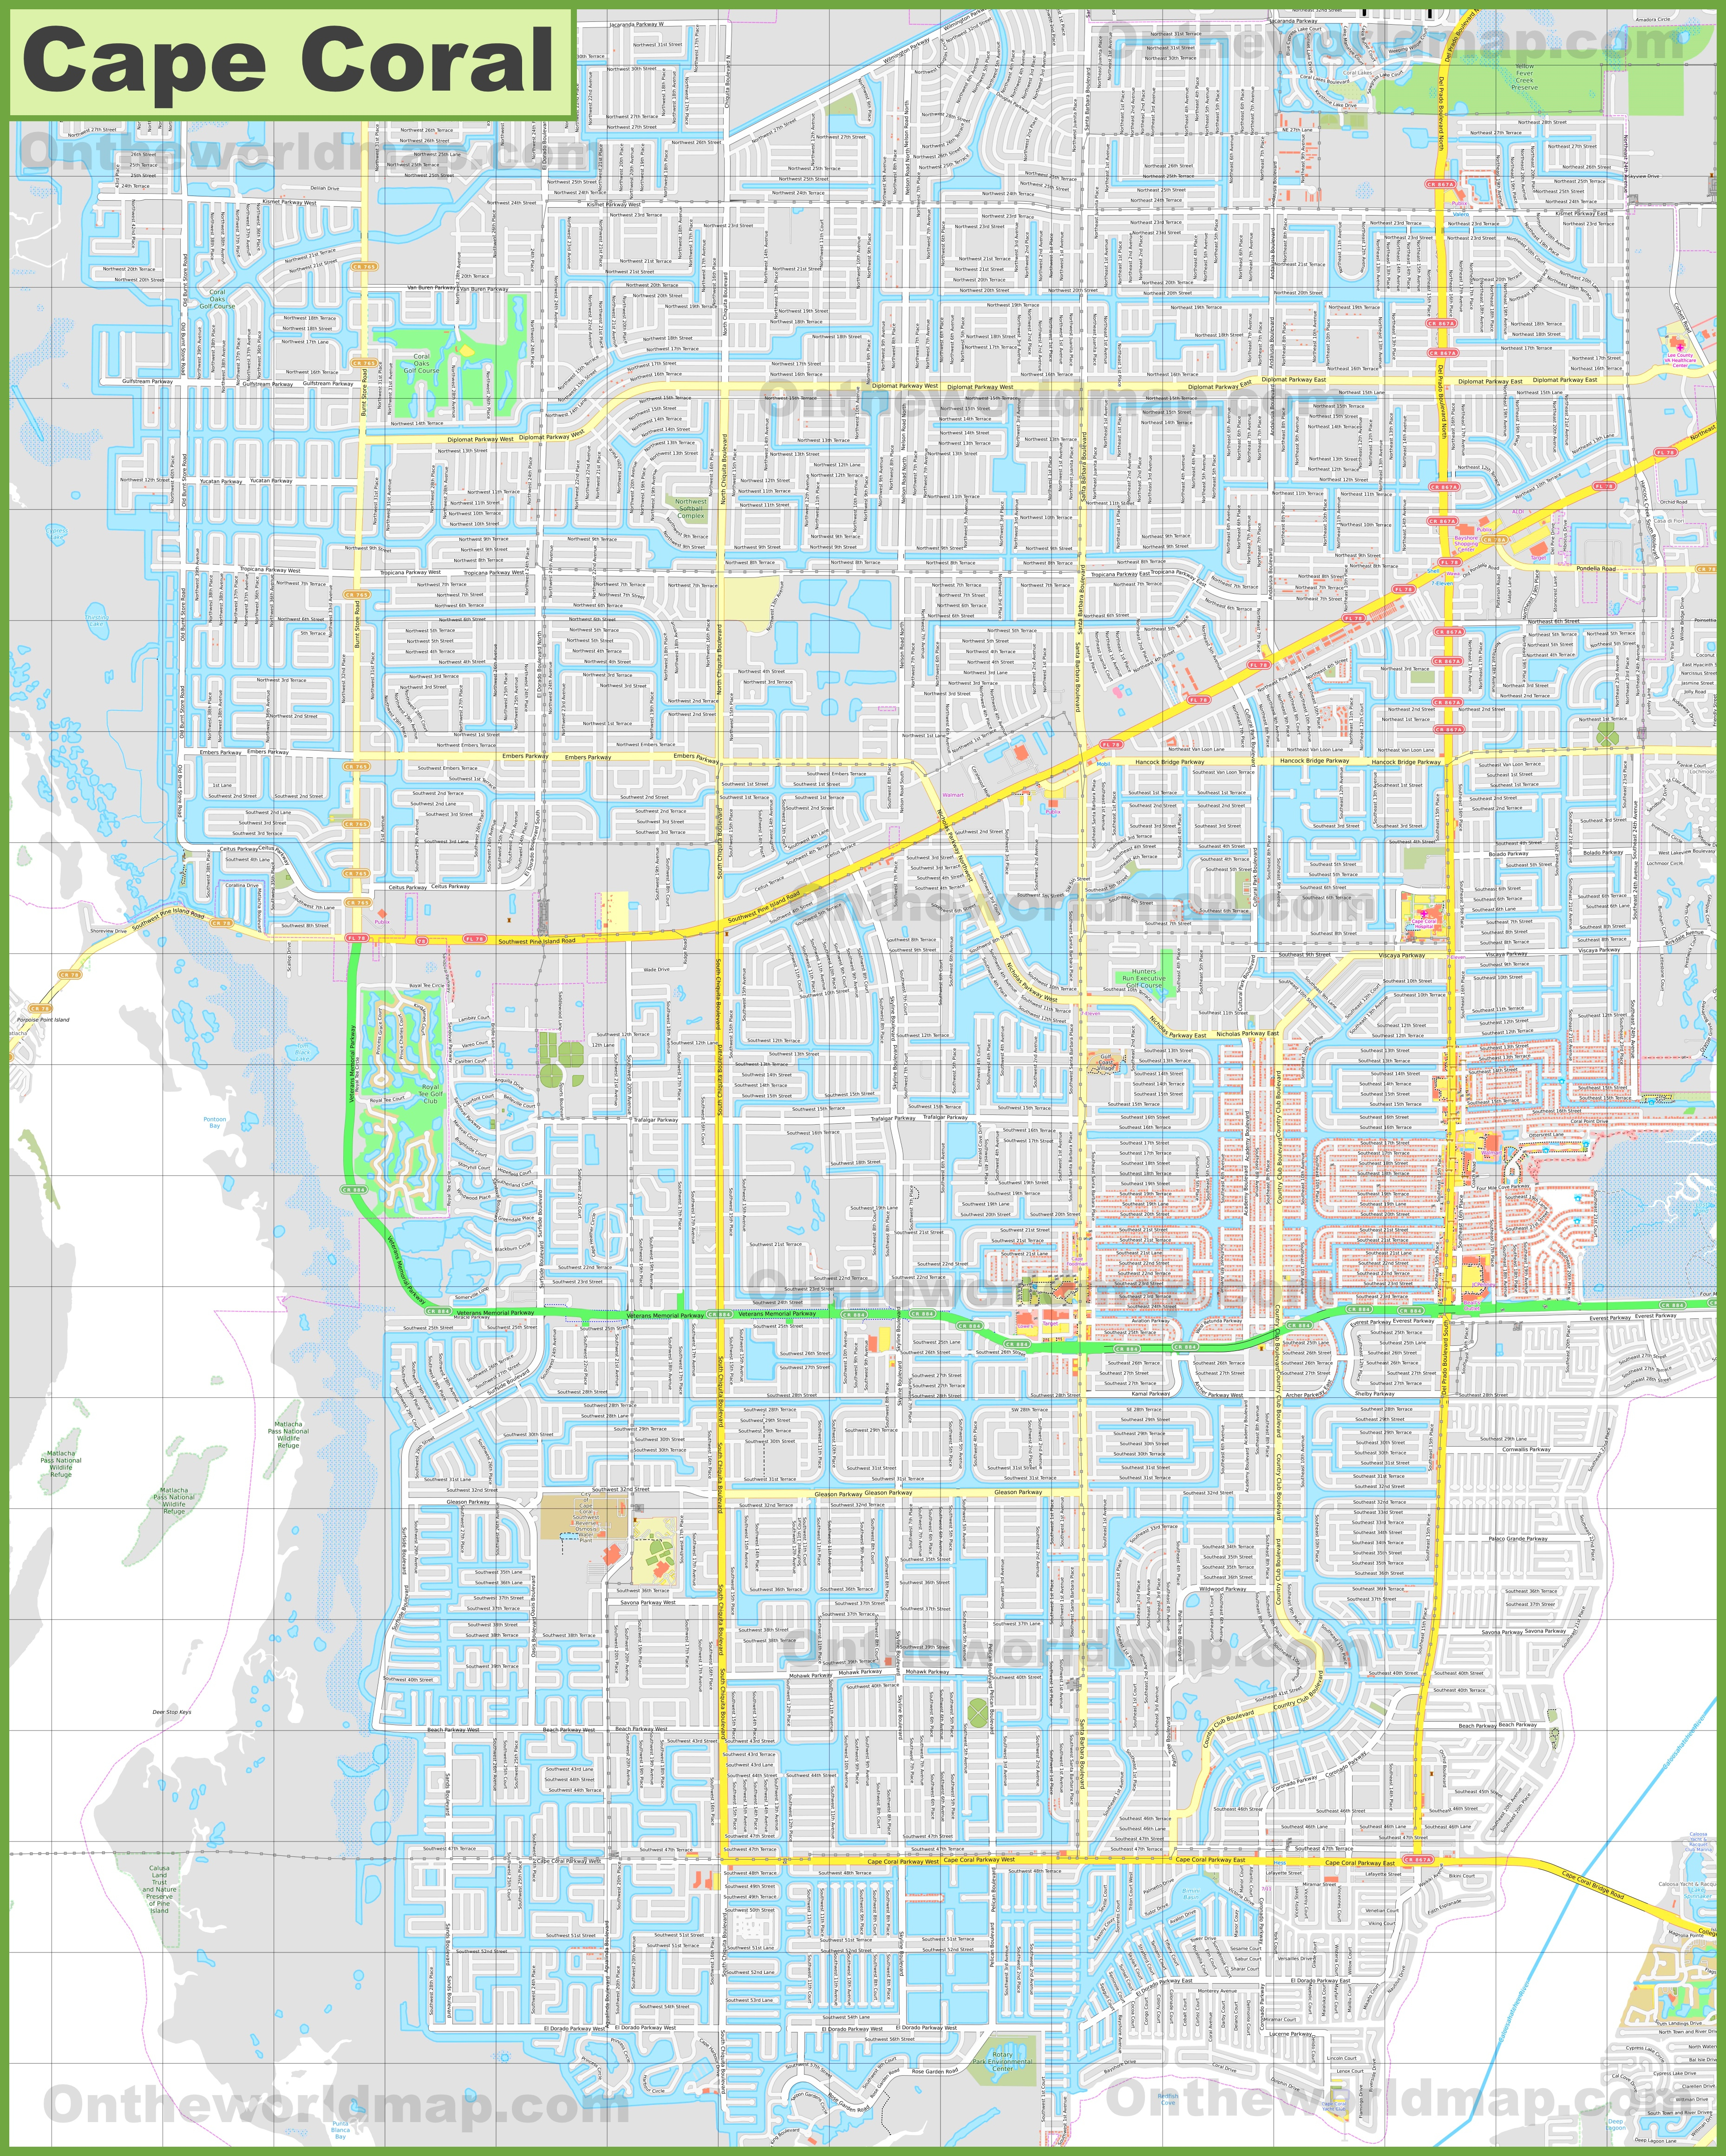 Large Detailed Map Of Cape Coral - Street Map Of Cape Coral Florida